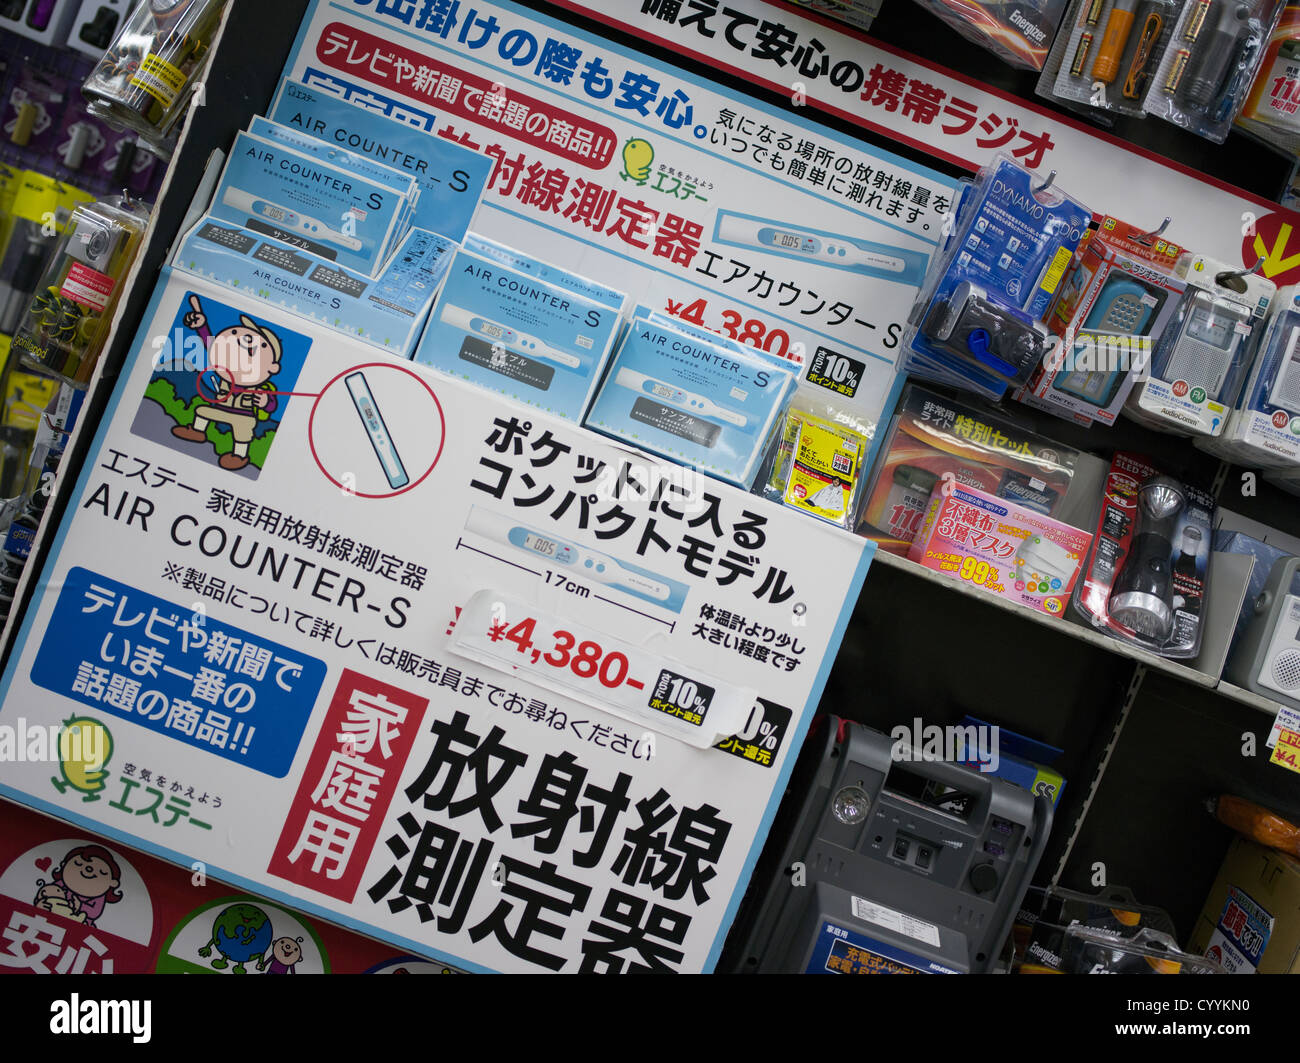 Earthquake, tsunami, and radiation emergency and detection equipment inc. dosimeters on sale in Tokyo, for home - Stock Image